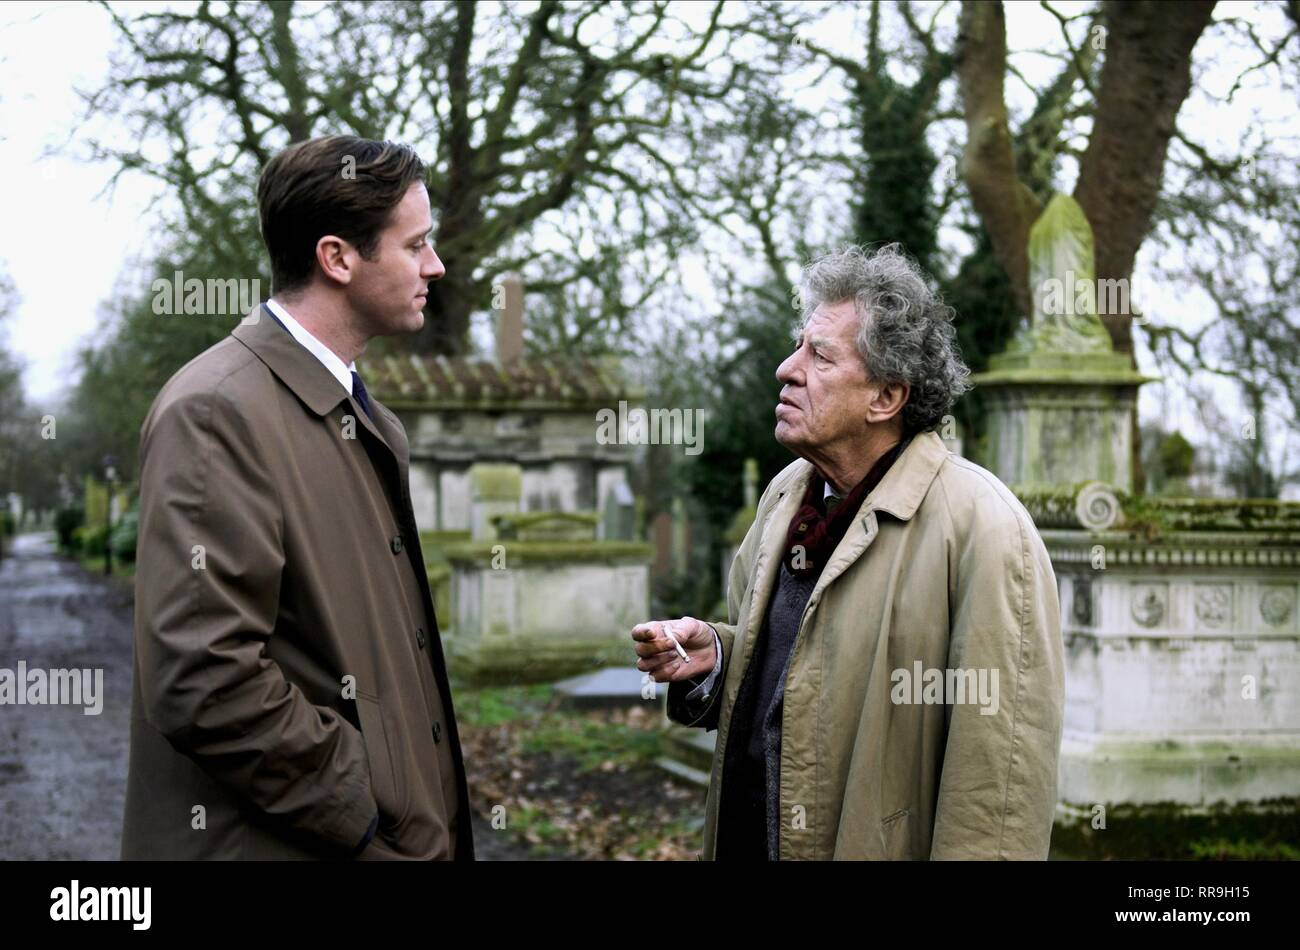 FINAL PORTRAIT, ARMIE HAMMER , GEOFFREY RUSH, 2017 - Stock Image